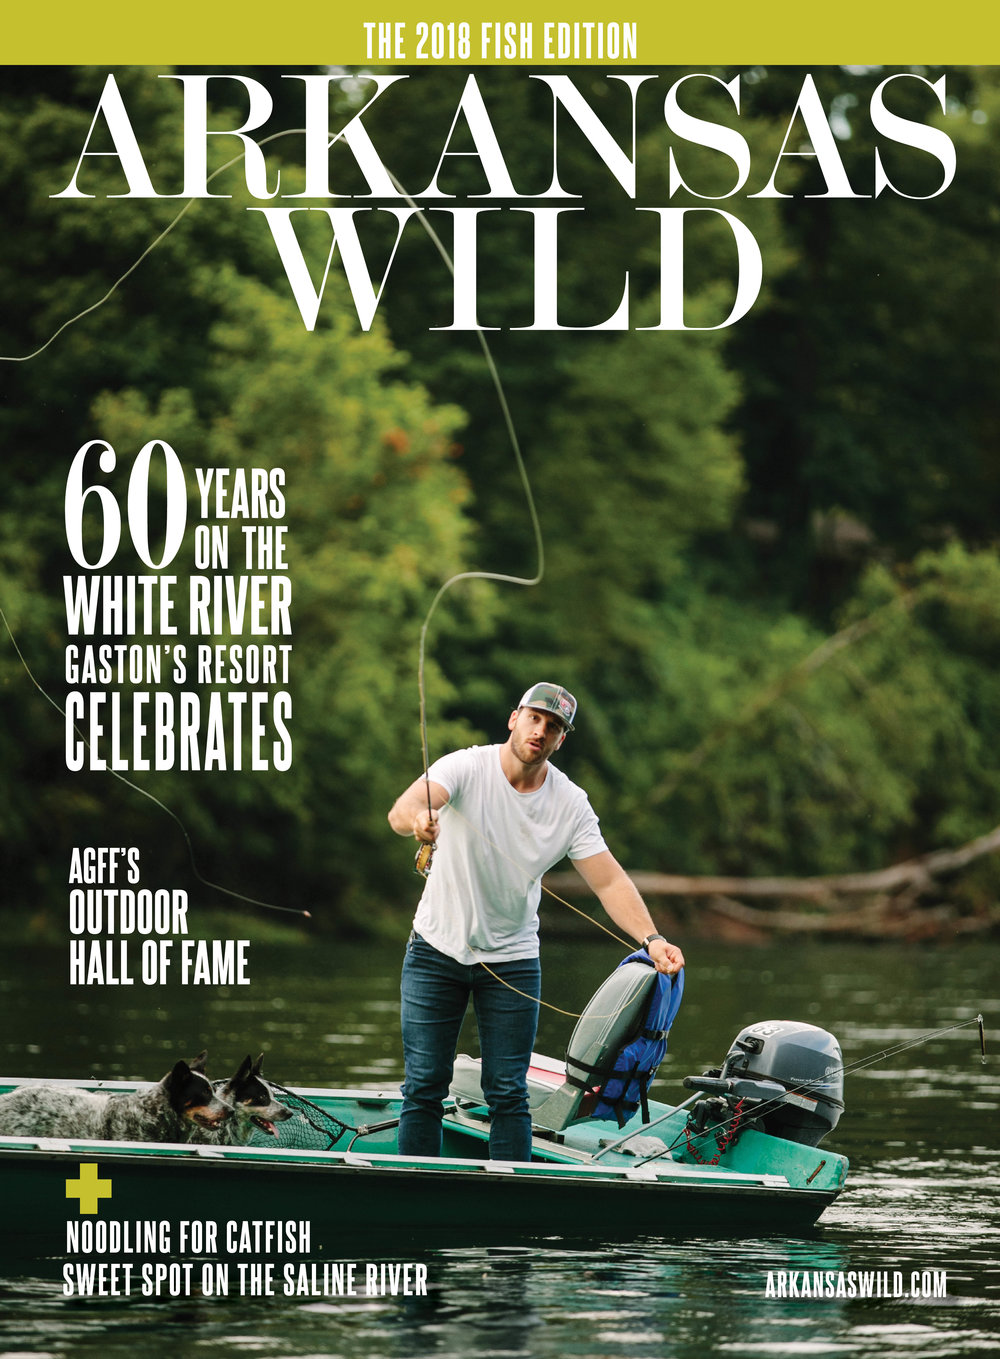 Fish Arkansas 2018 Edition cover.jpg